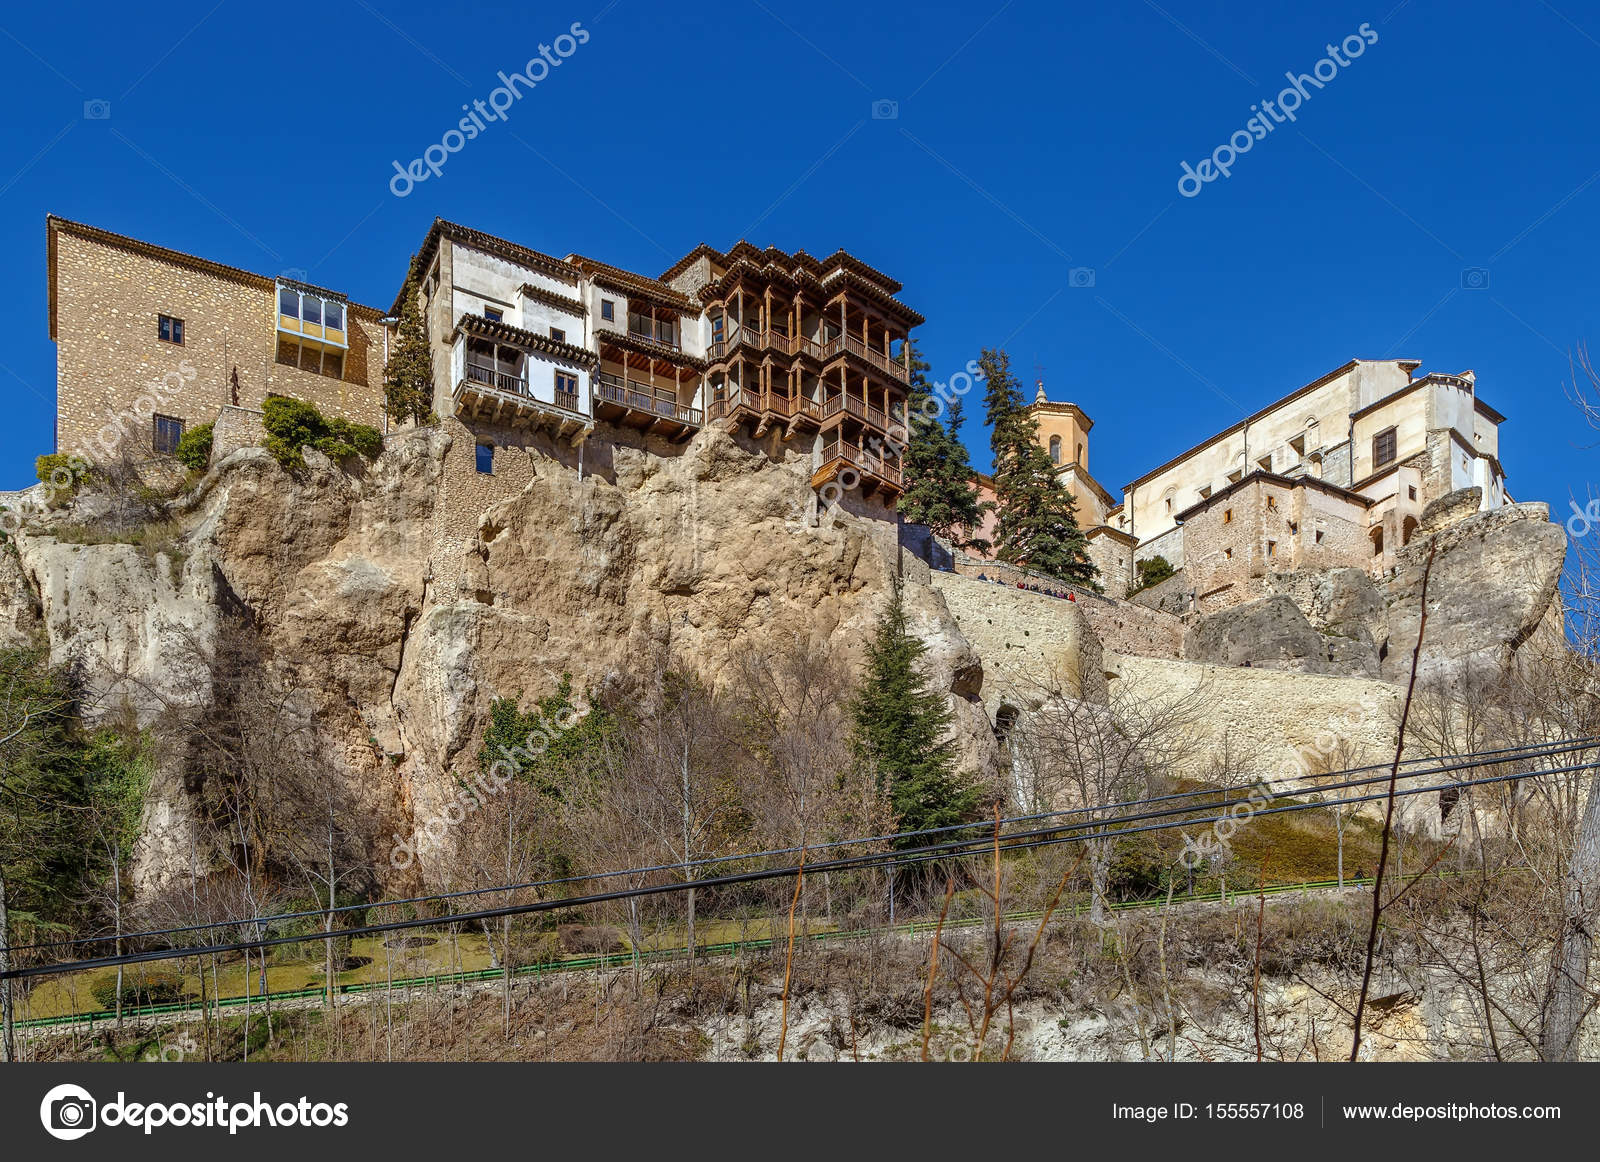 Hanging Houses Is Complex Of Houses On Rock In Cuenca, Spain U2014 Photo By  Borisb17